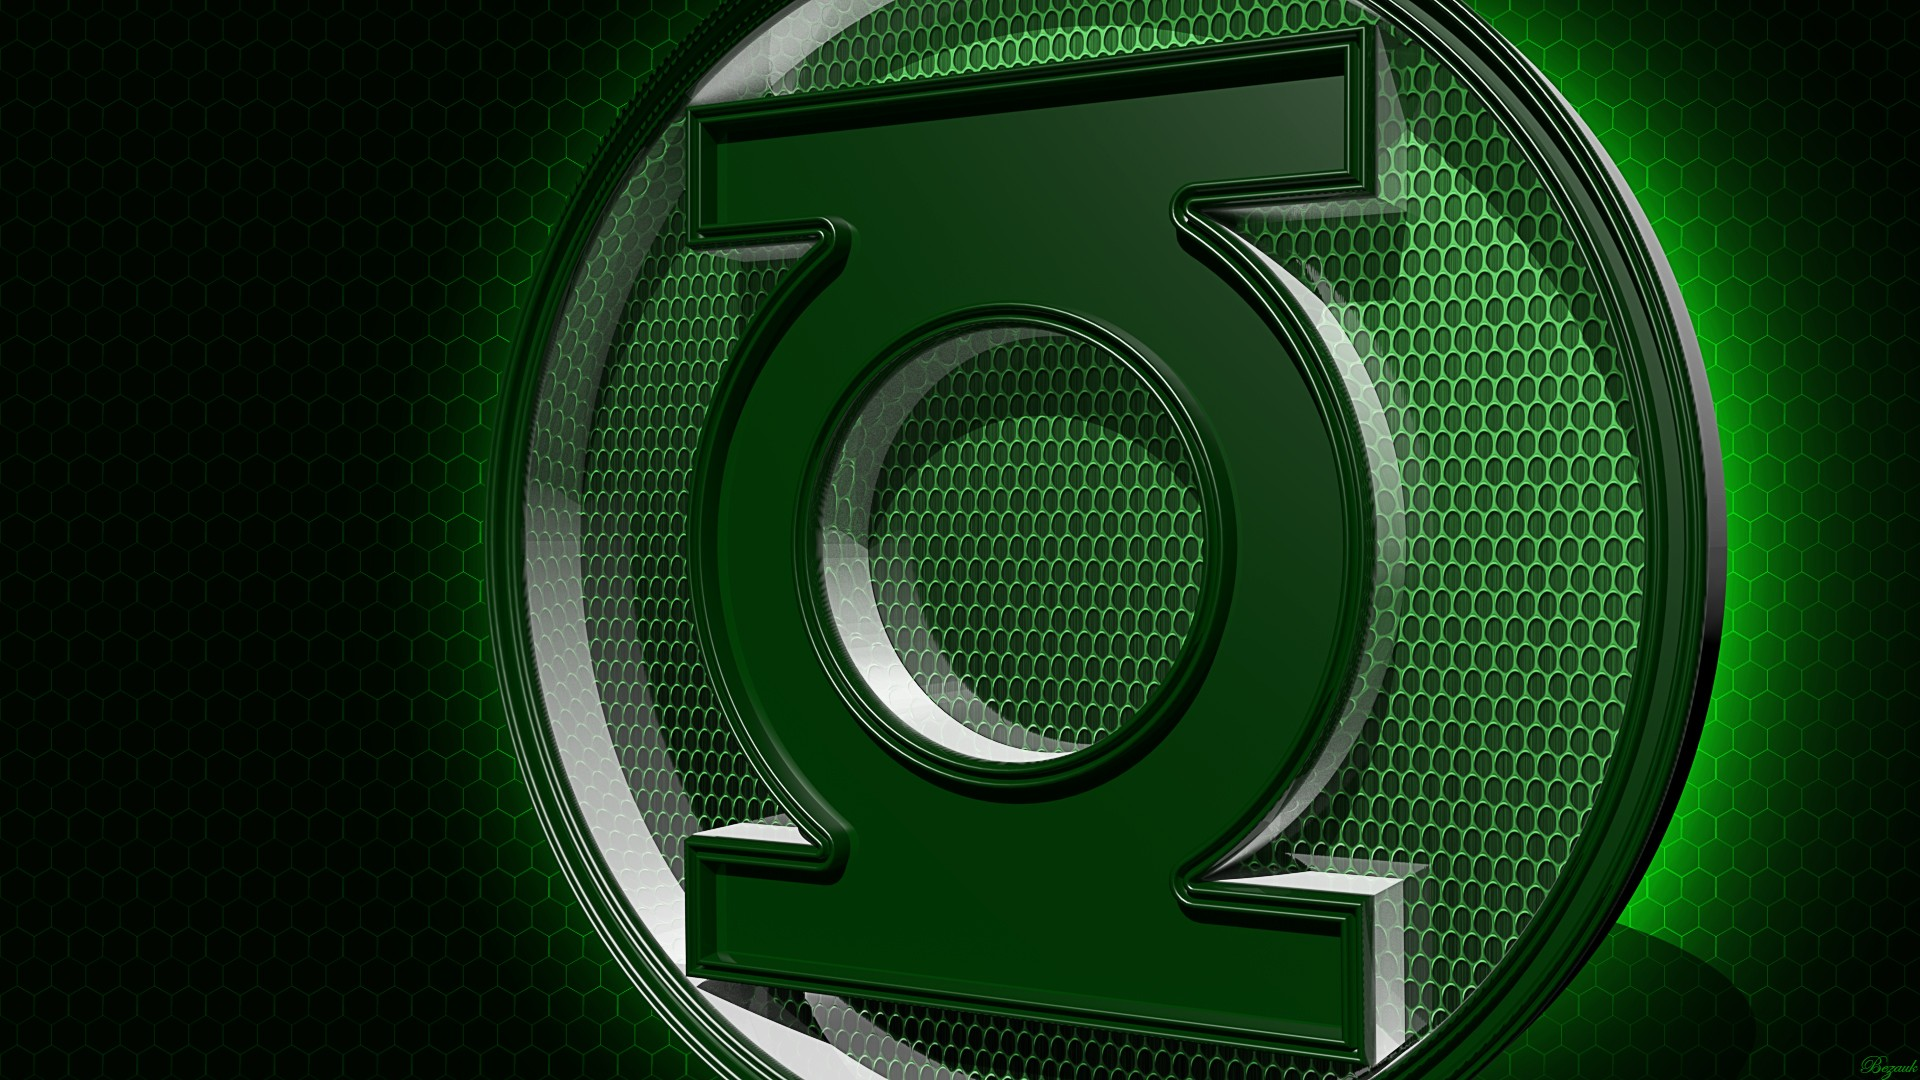 Green Lantern 1080p 3d art by bezauk 1920x1080